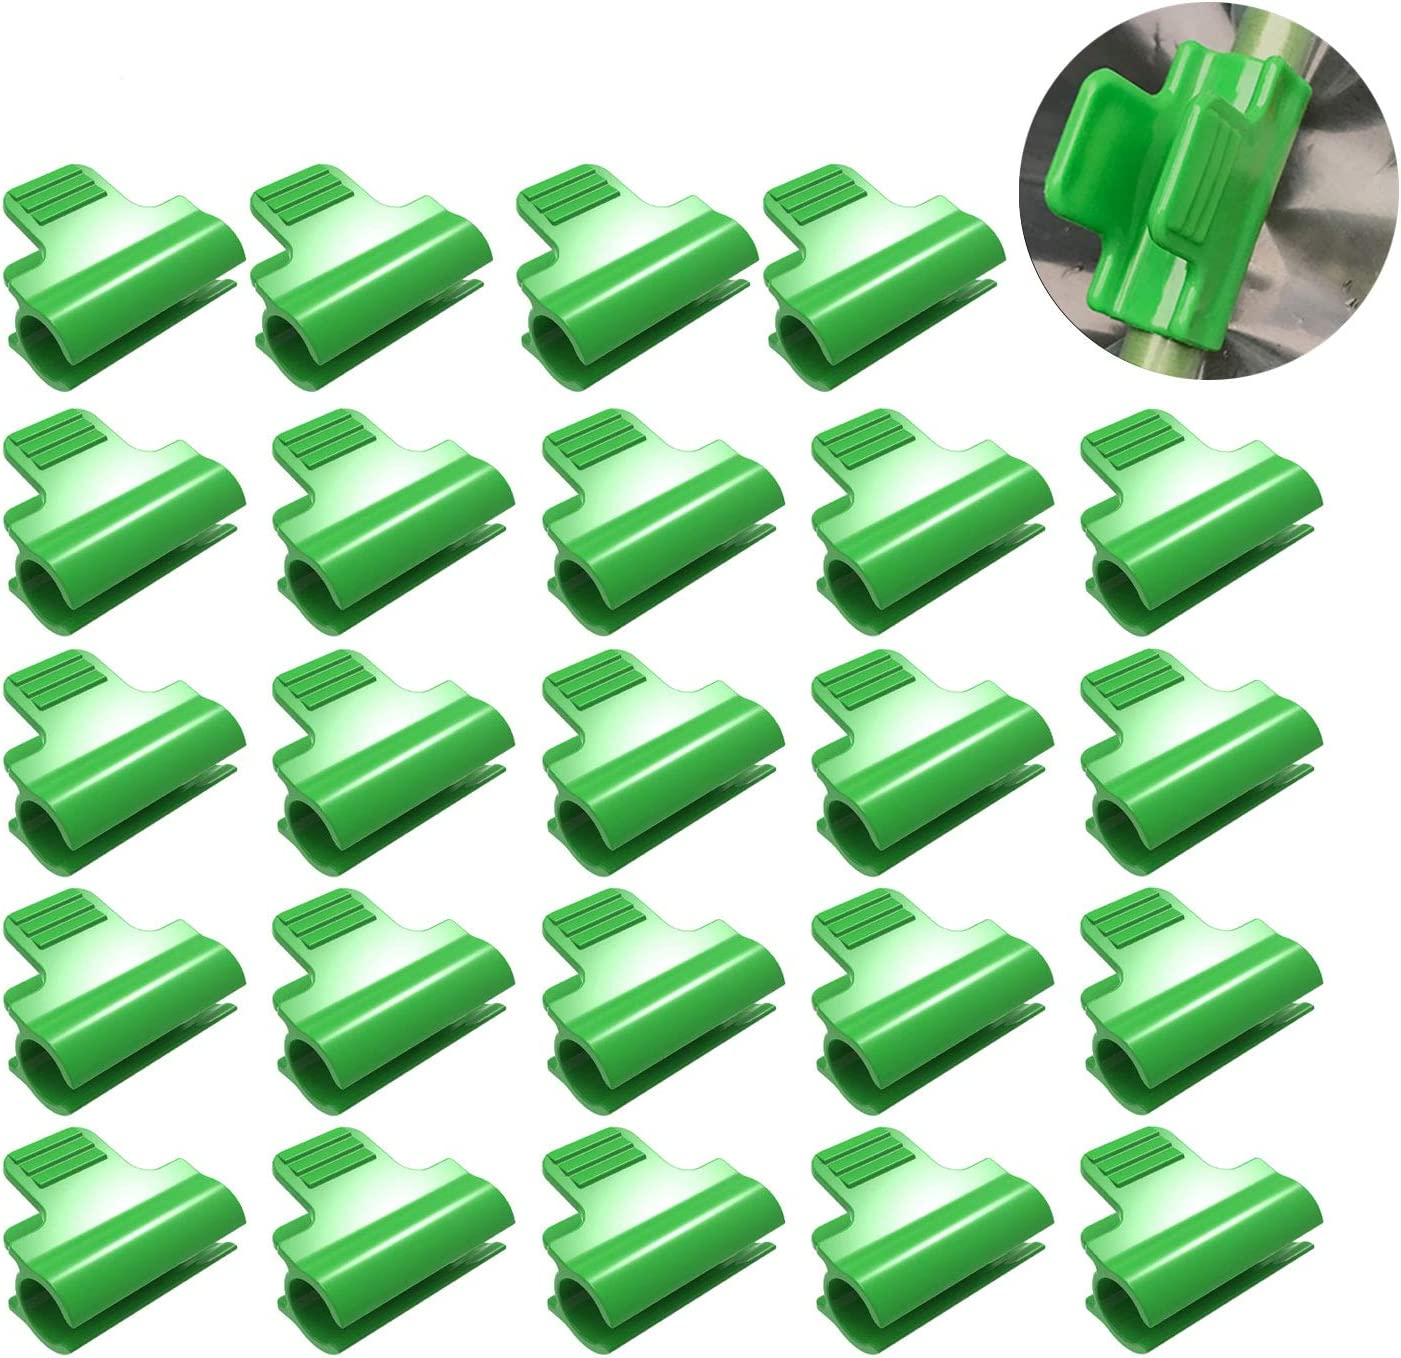 Sirozi 24 Pack Greenhouse Row Cover Tunnel Hoop Clips, Netting Tunnel Hoop Clamps Extension Shed Film Frame Shading Net Rod Clip for 11mm/0.43 Plant Stakes